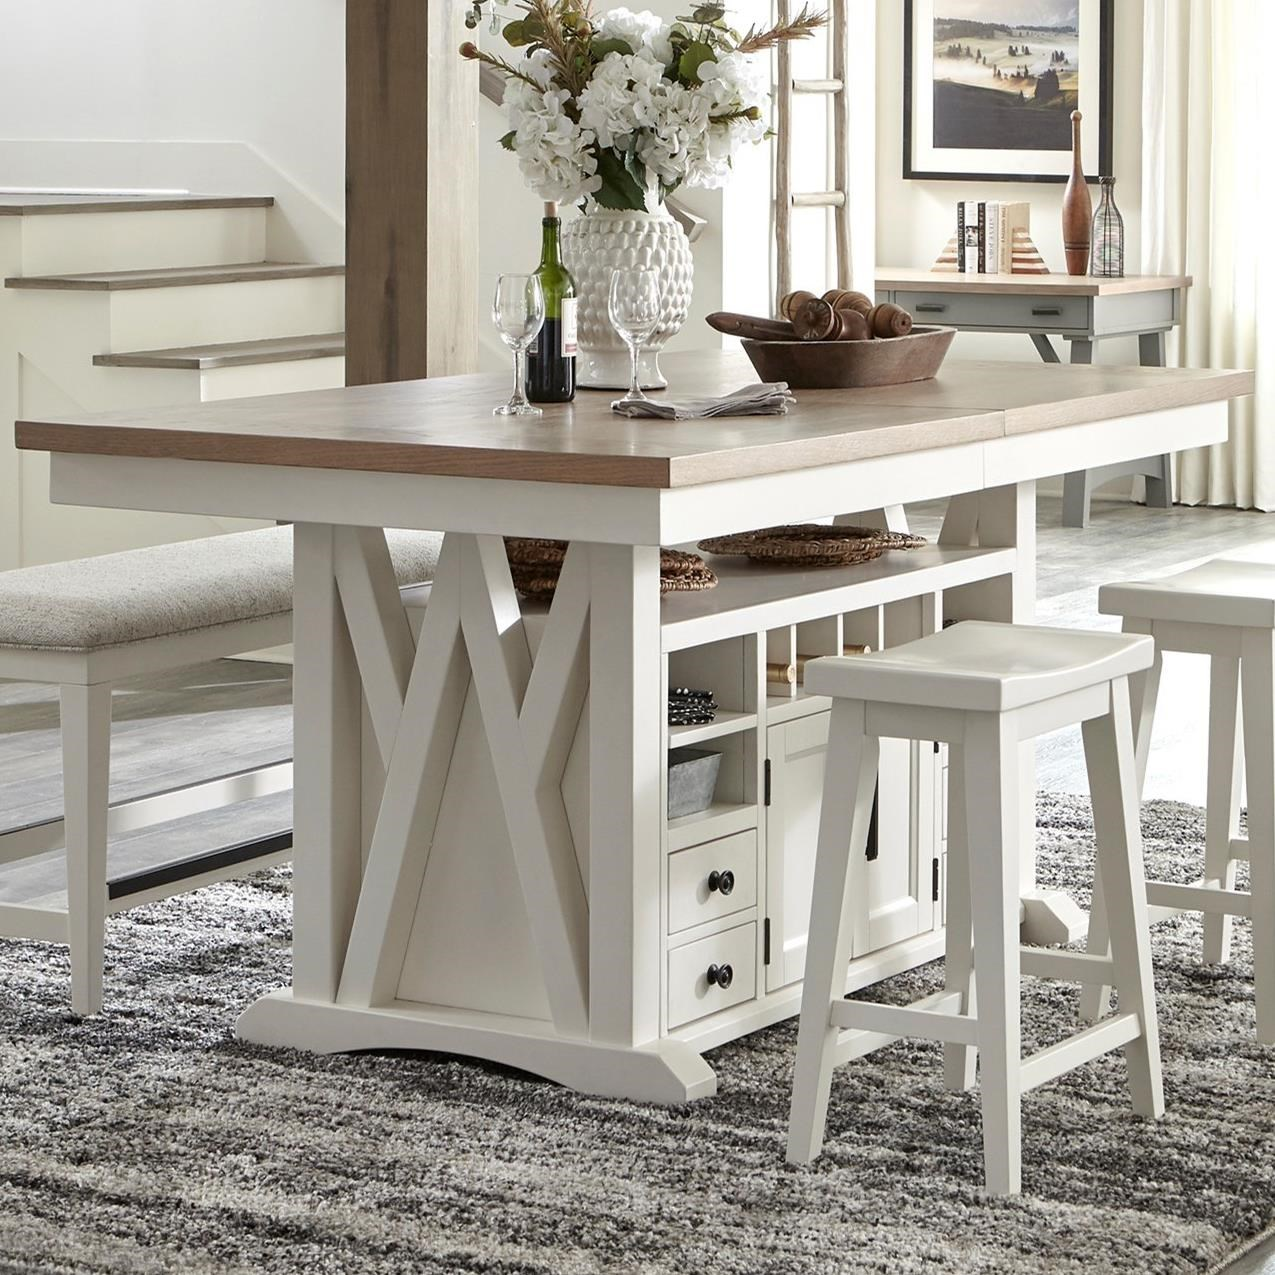 Americana Modern Island Counter Height Table by Parker House at Simply Home by Lindy's